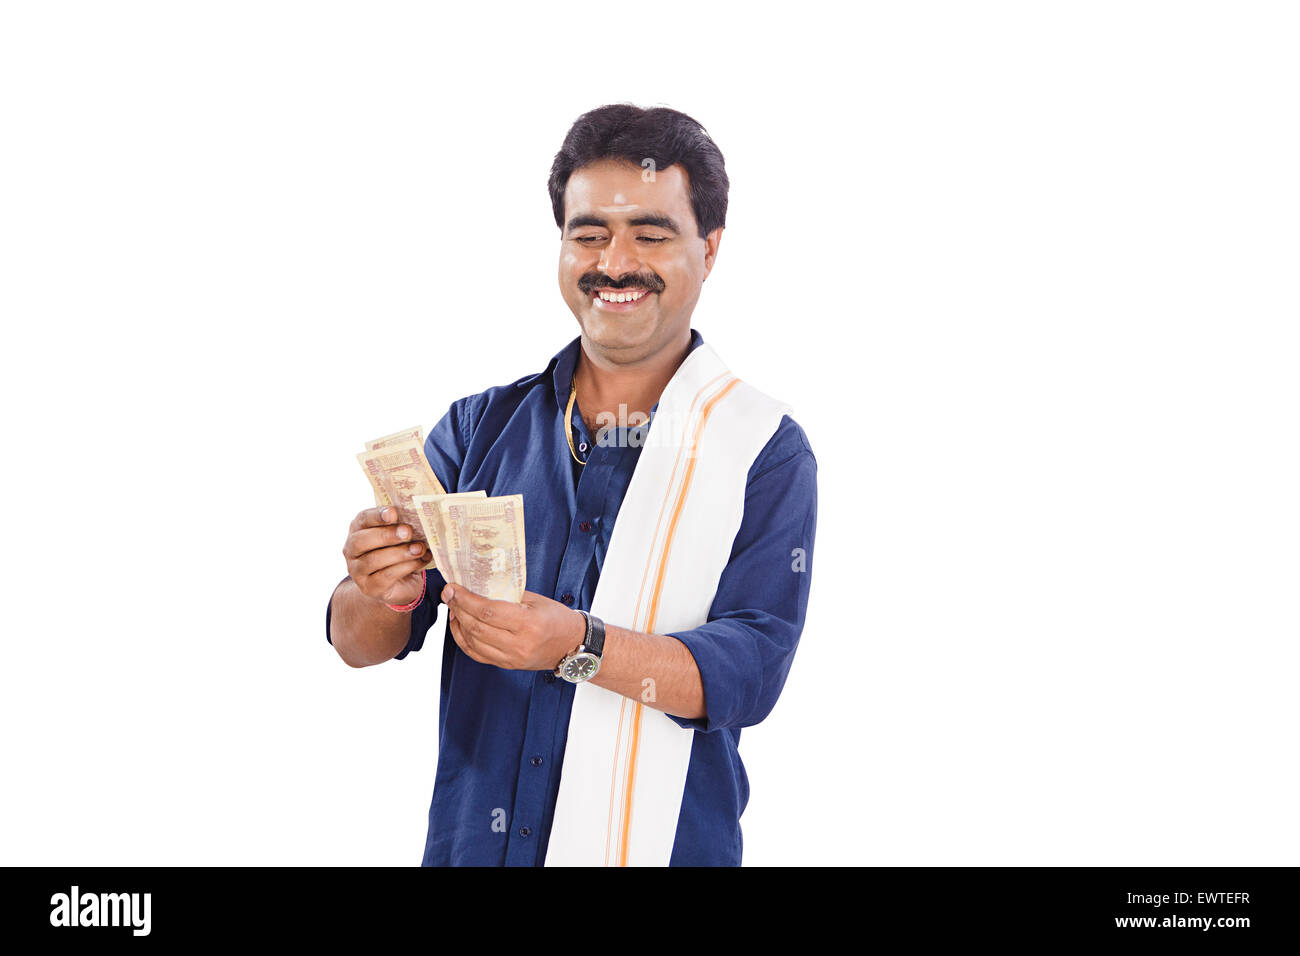 hindu single men in coin Hindu way of life hinduism,  pointing the index finger channels that force into a single stream  in hindu culture, for the most part, men socialize with men, .